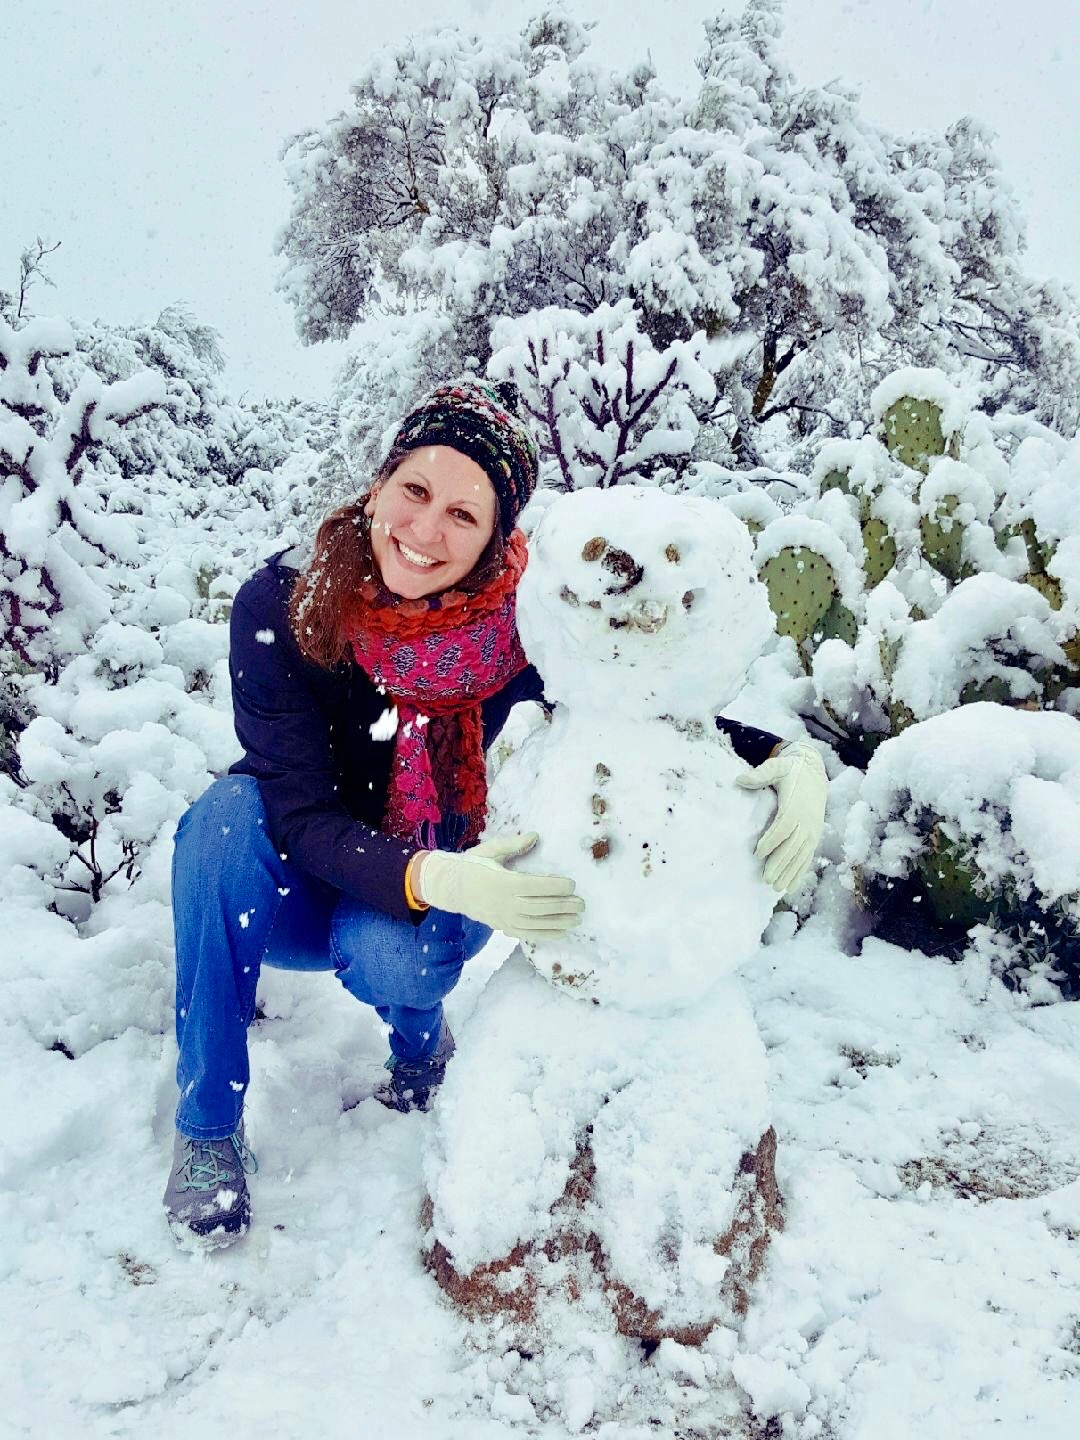 My snow friend and me